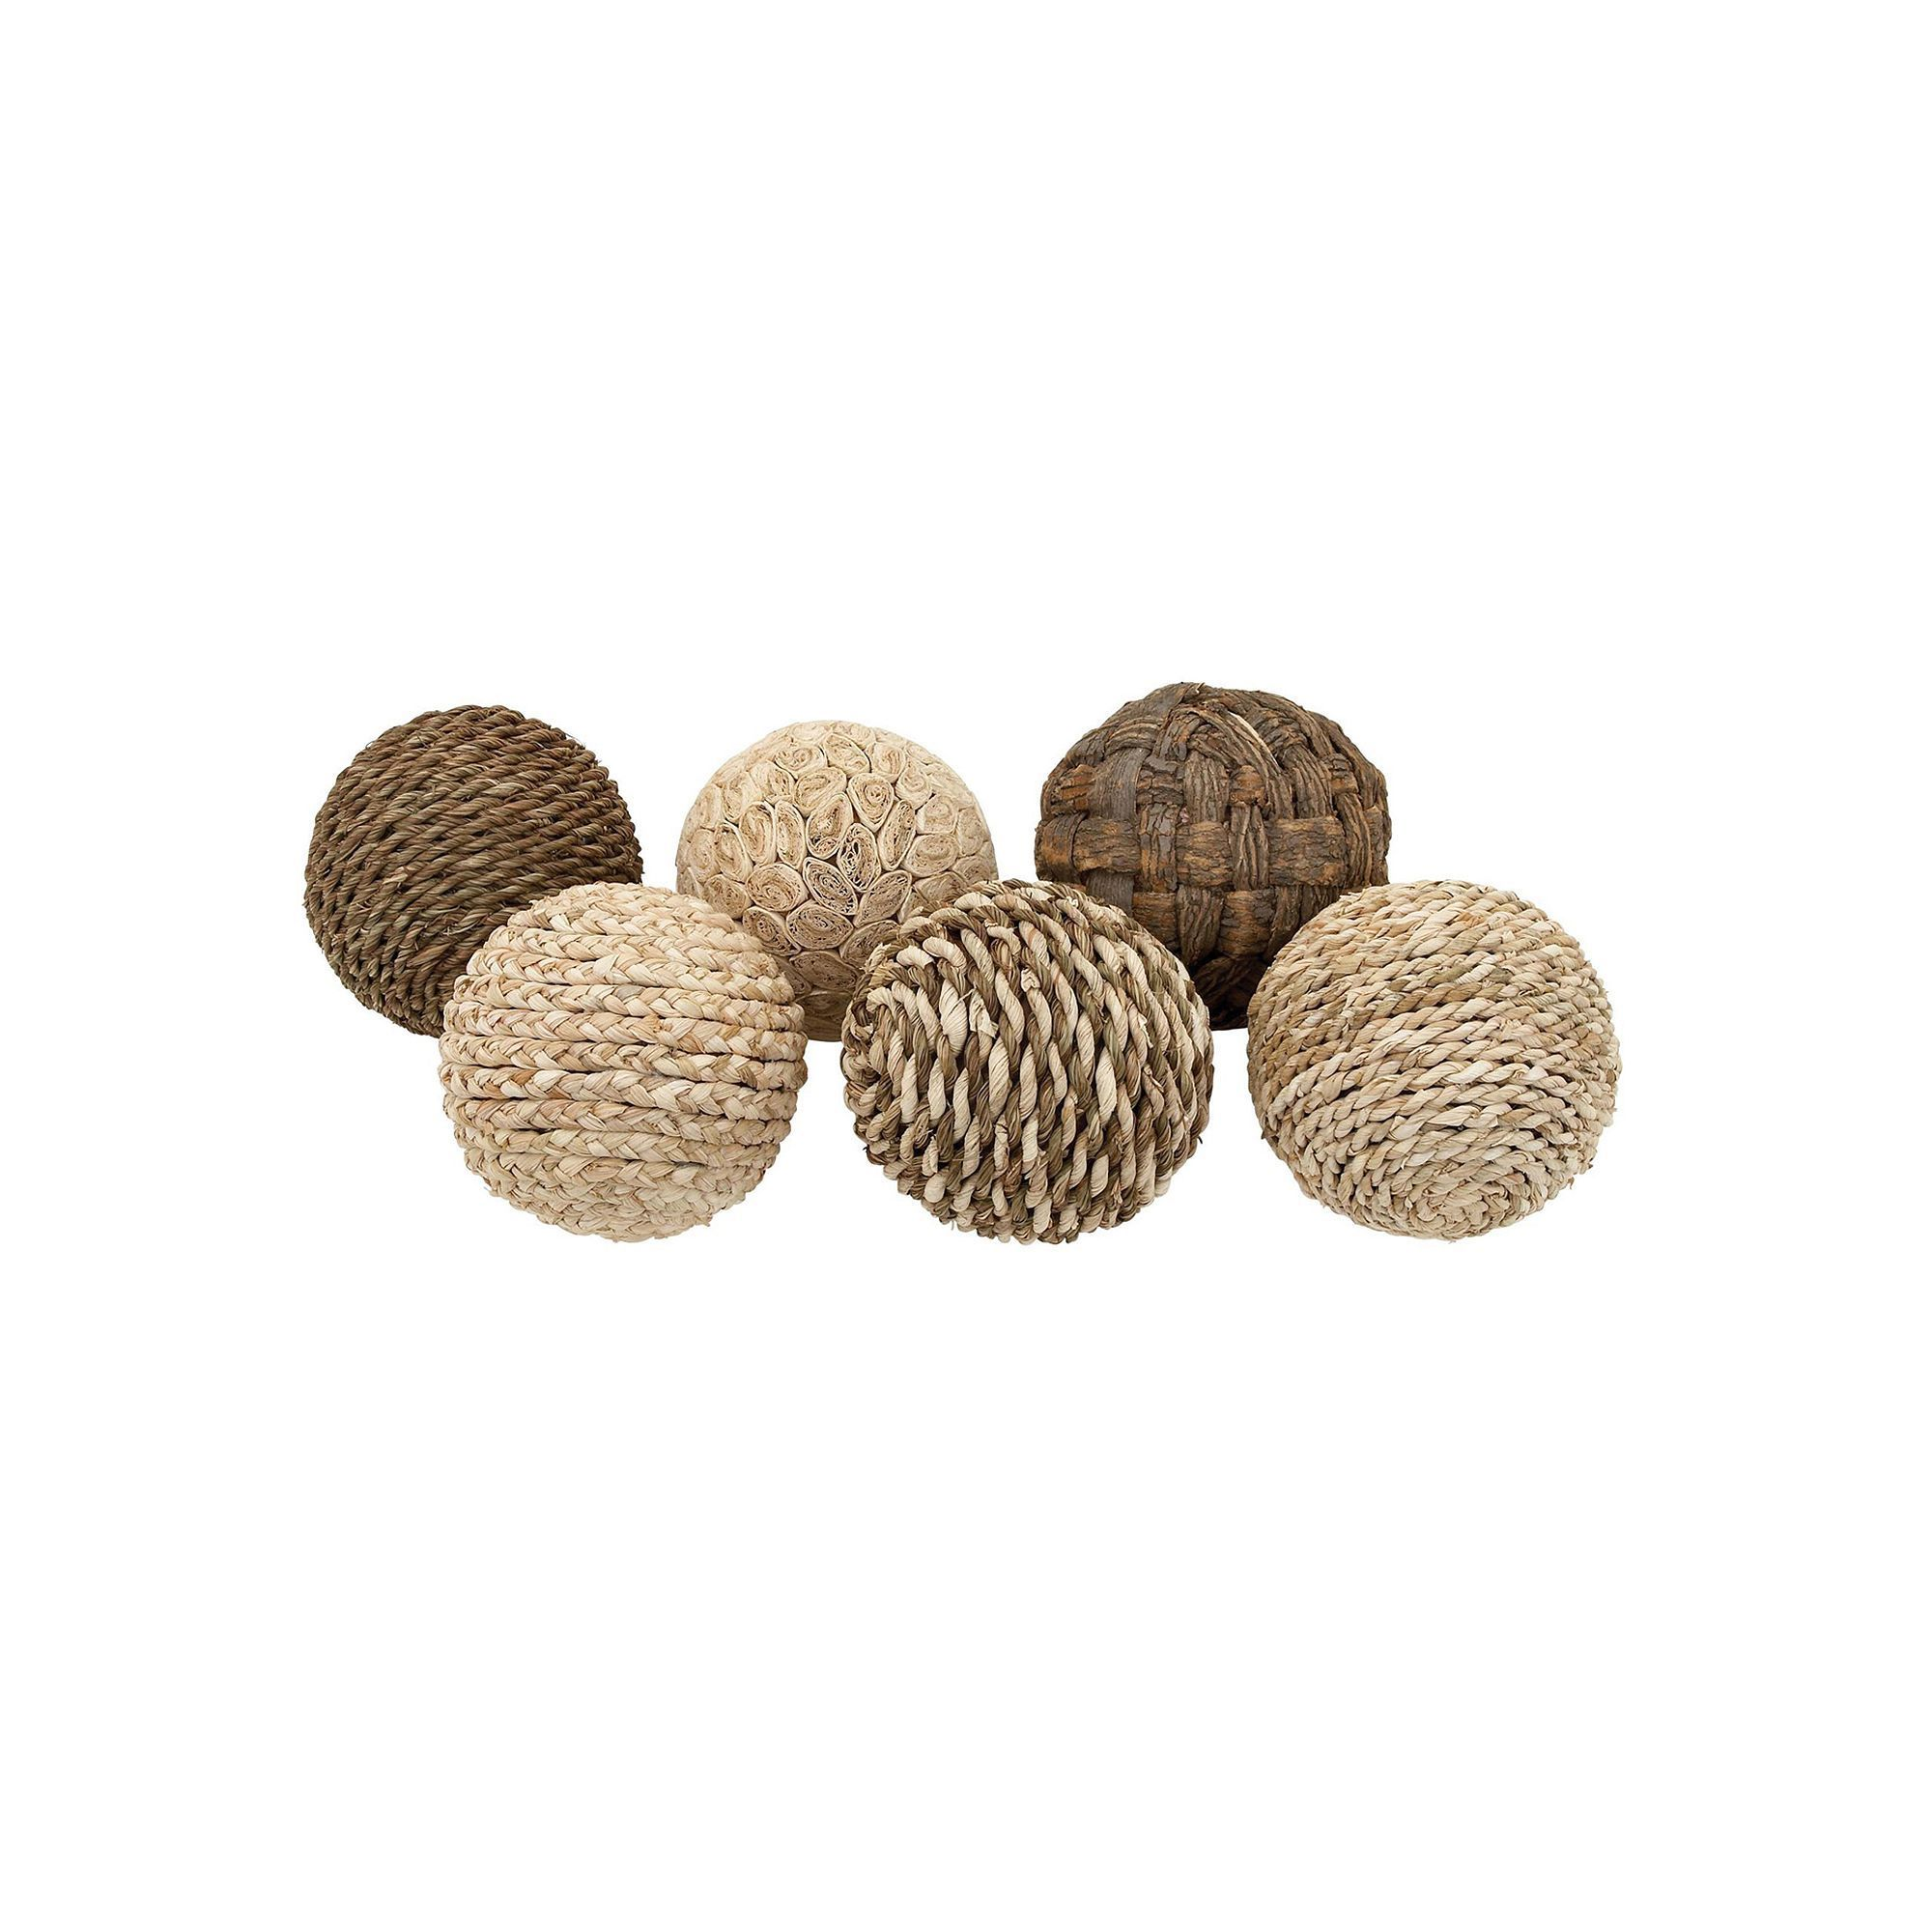 Coastal Living Assorted Balls Vase Filler 6-piece Set, Brown | Pinterest